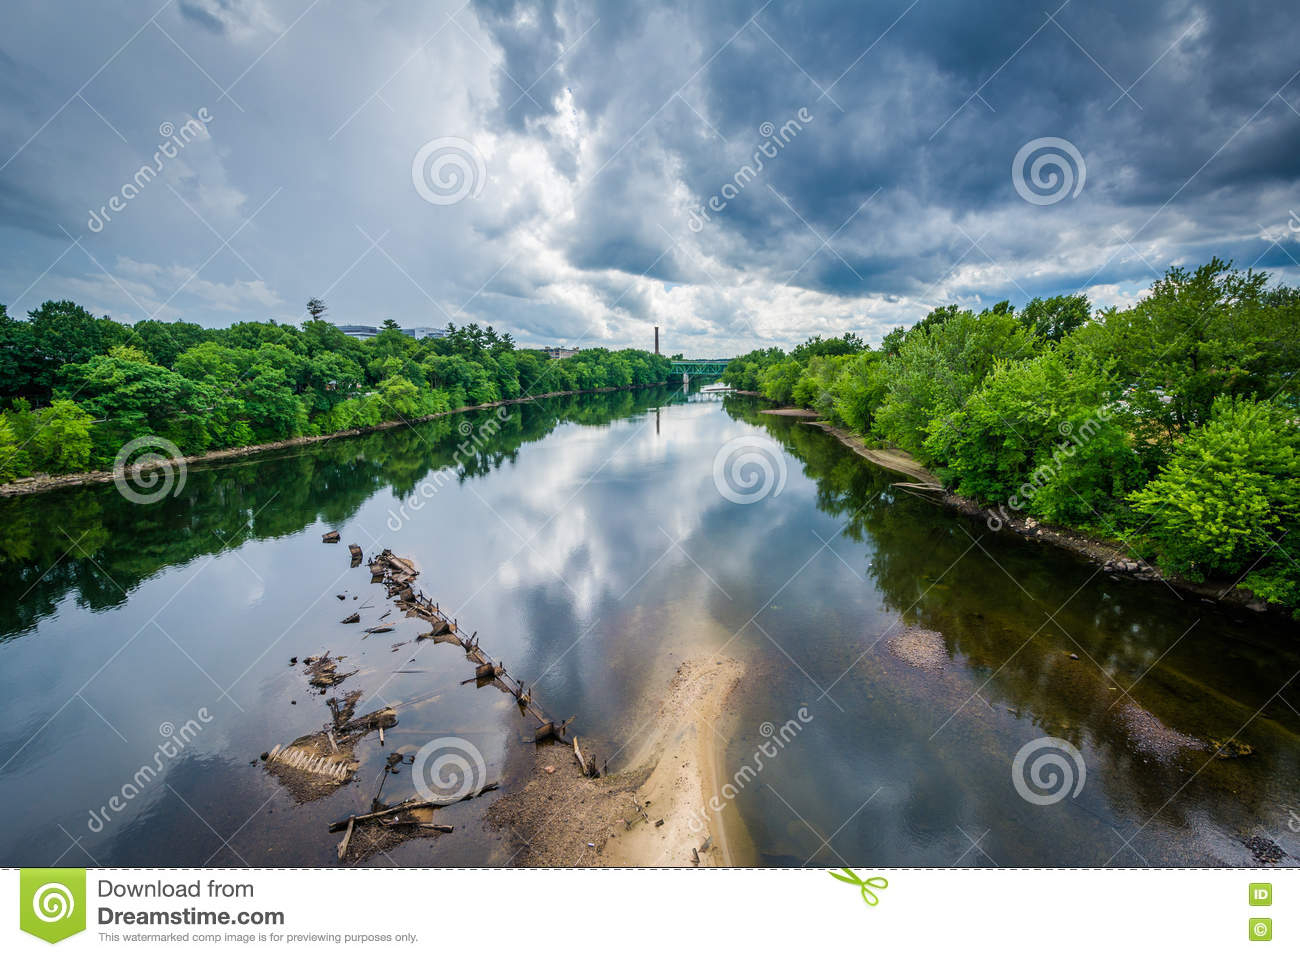 Storm clouds over the Merrimack River, in Manchester, New Hamps